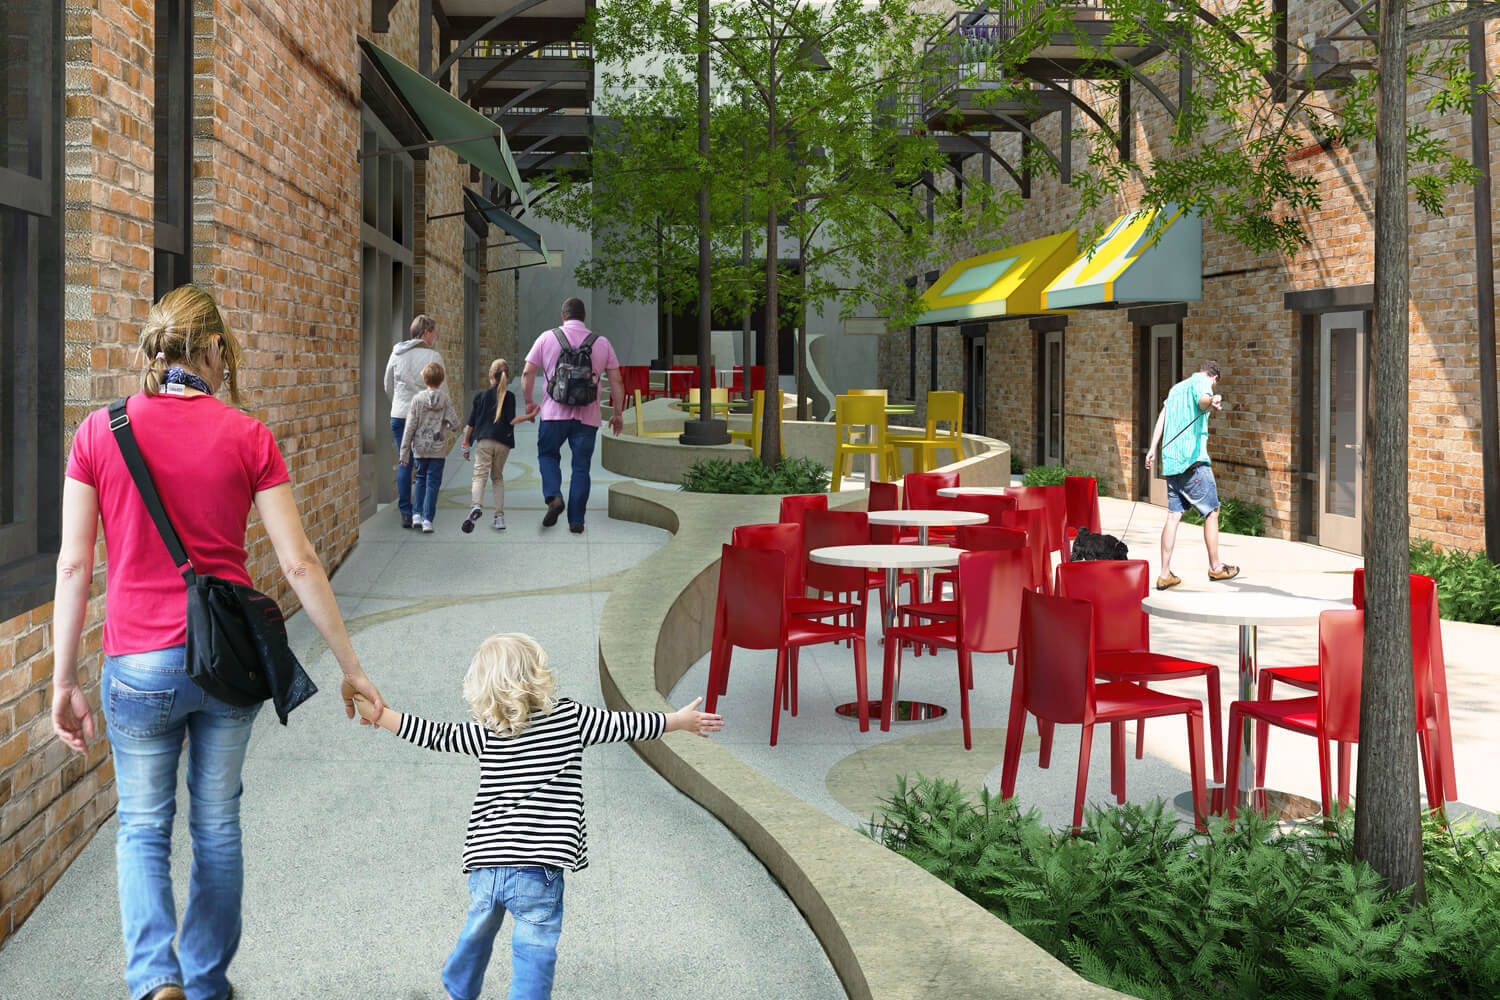 Dexter Alley Park Designed by Foshee Architecture -Exterior View from Ramp